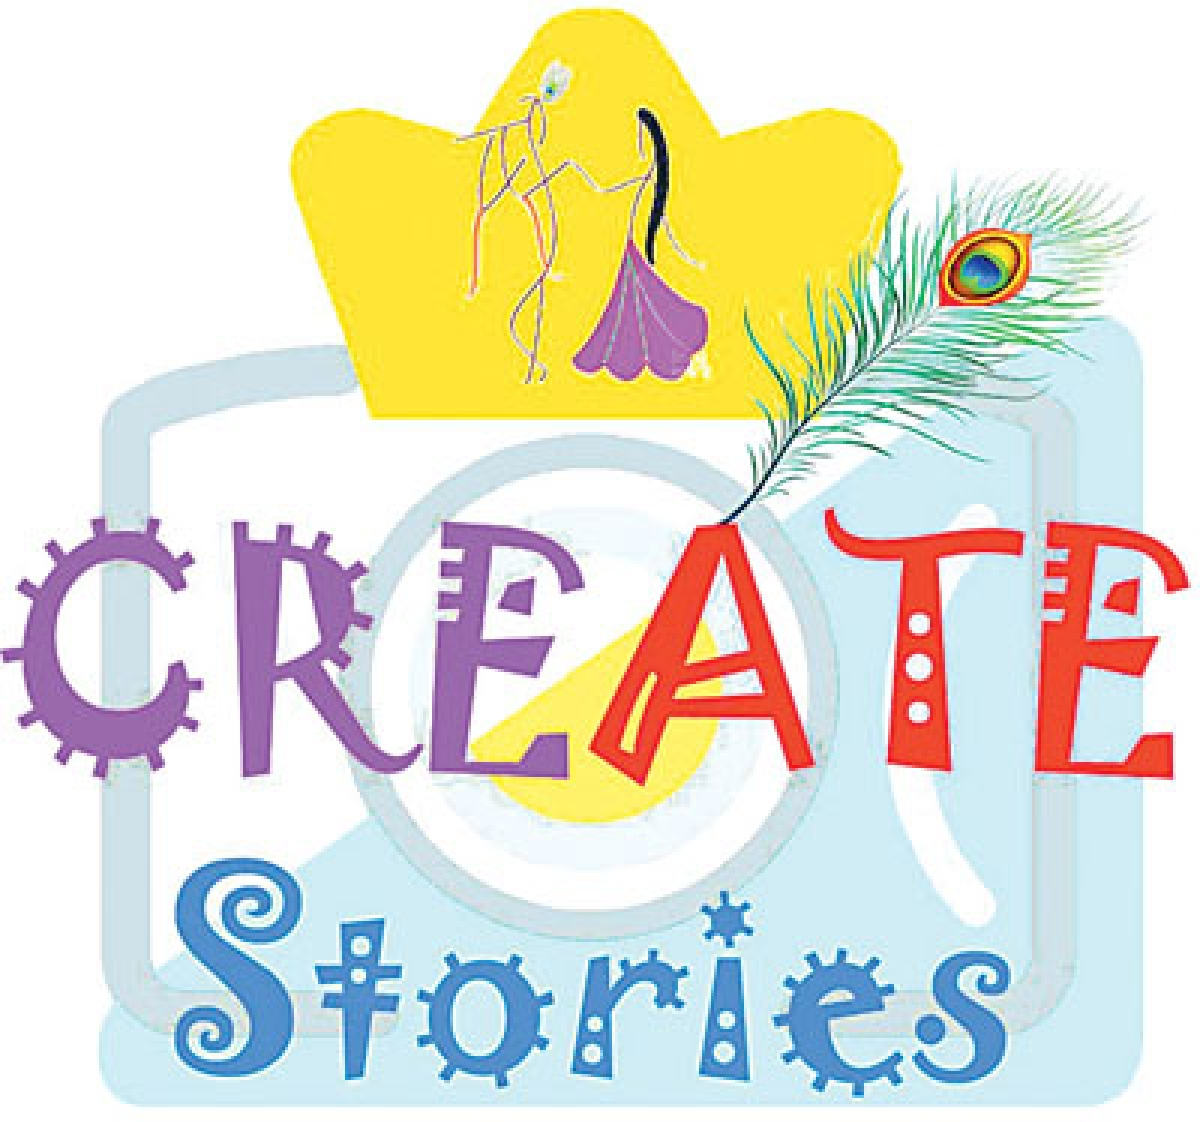 Indore: 'CREATE Stories Jee Le Zara' on February 20